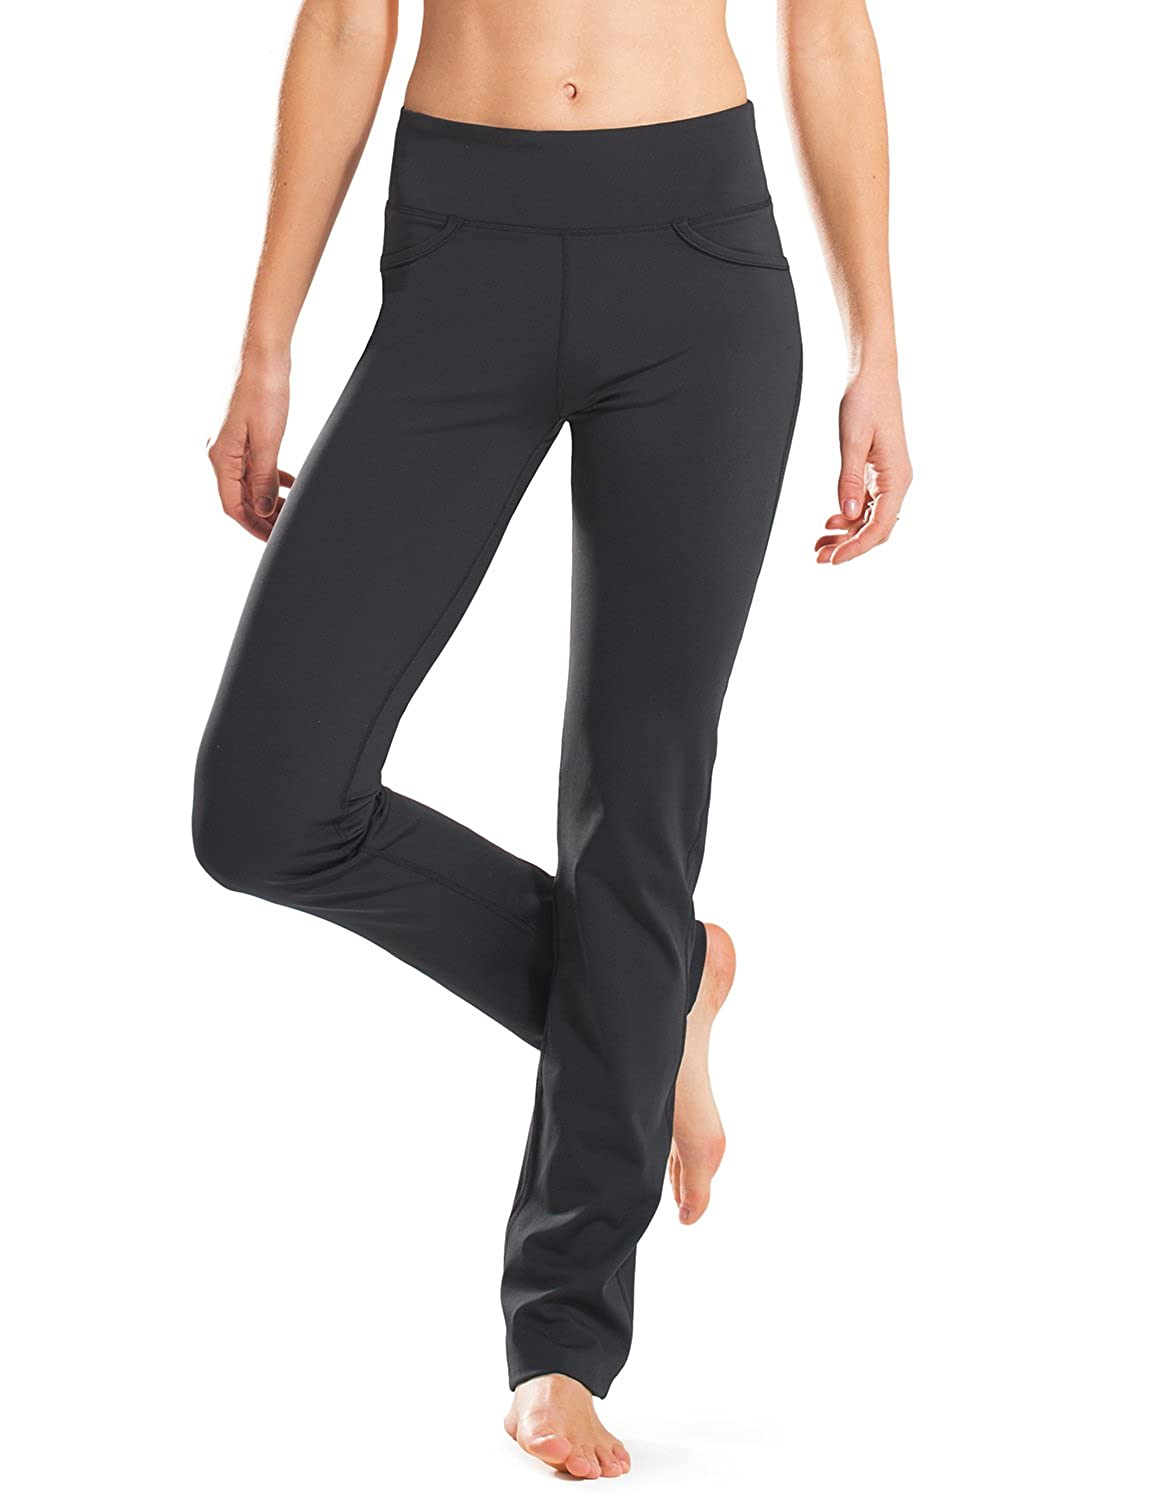 "d7181886f40d7 Amazon.com: Safort 28""/30""/32""/34"" Inseam Regular/Tall Mid-Waist Straight  Leg Yoga Pants, Four Pockets, Non-See-Through: Clothing"